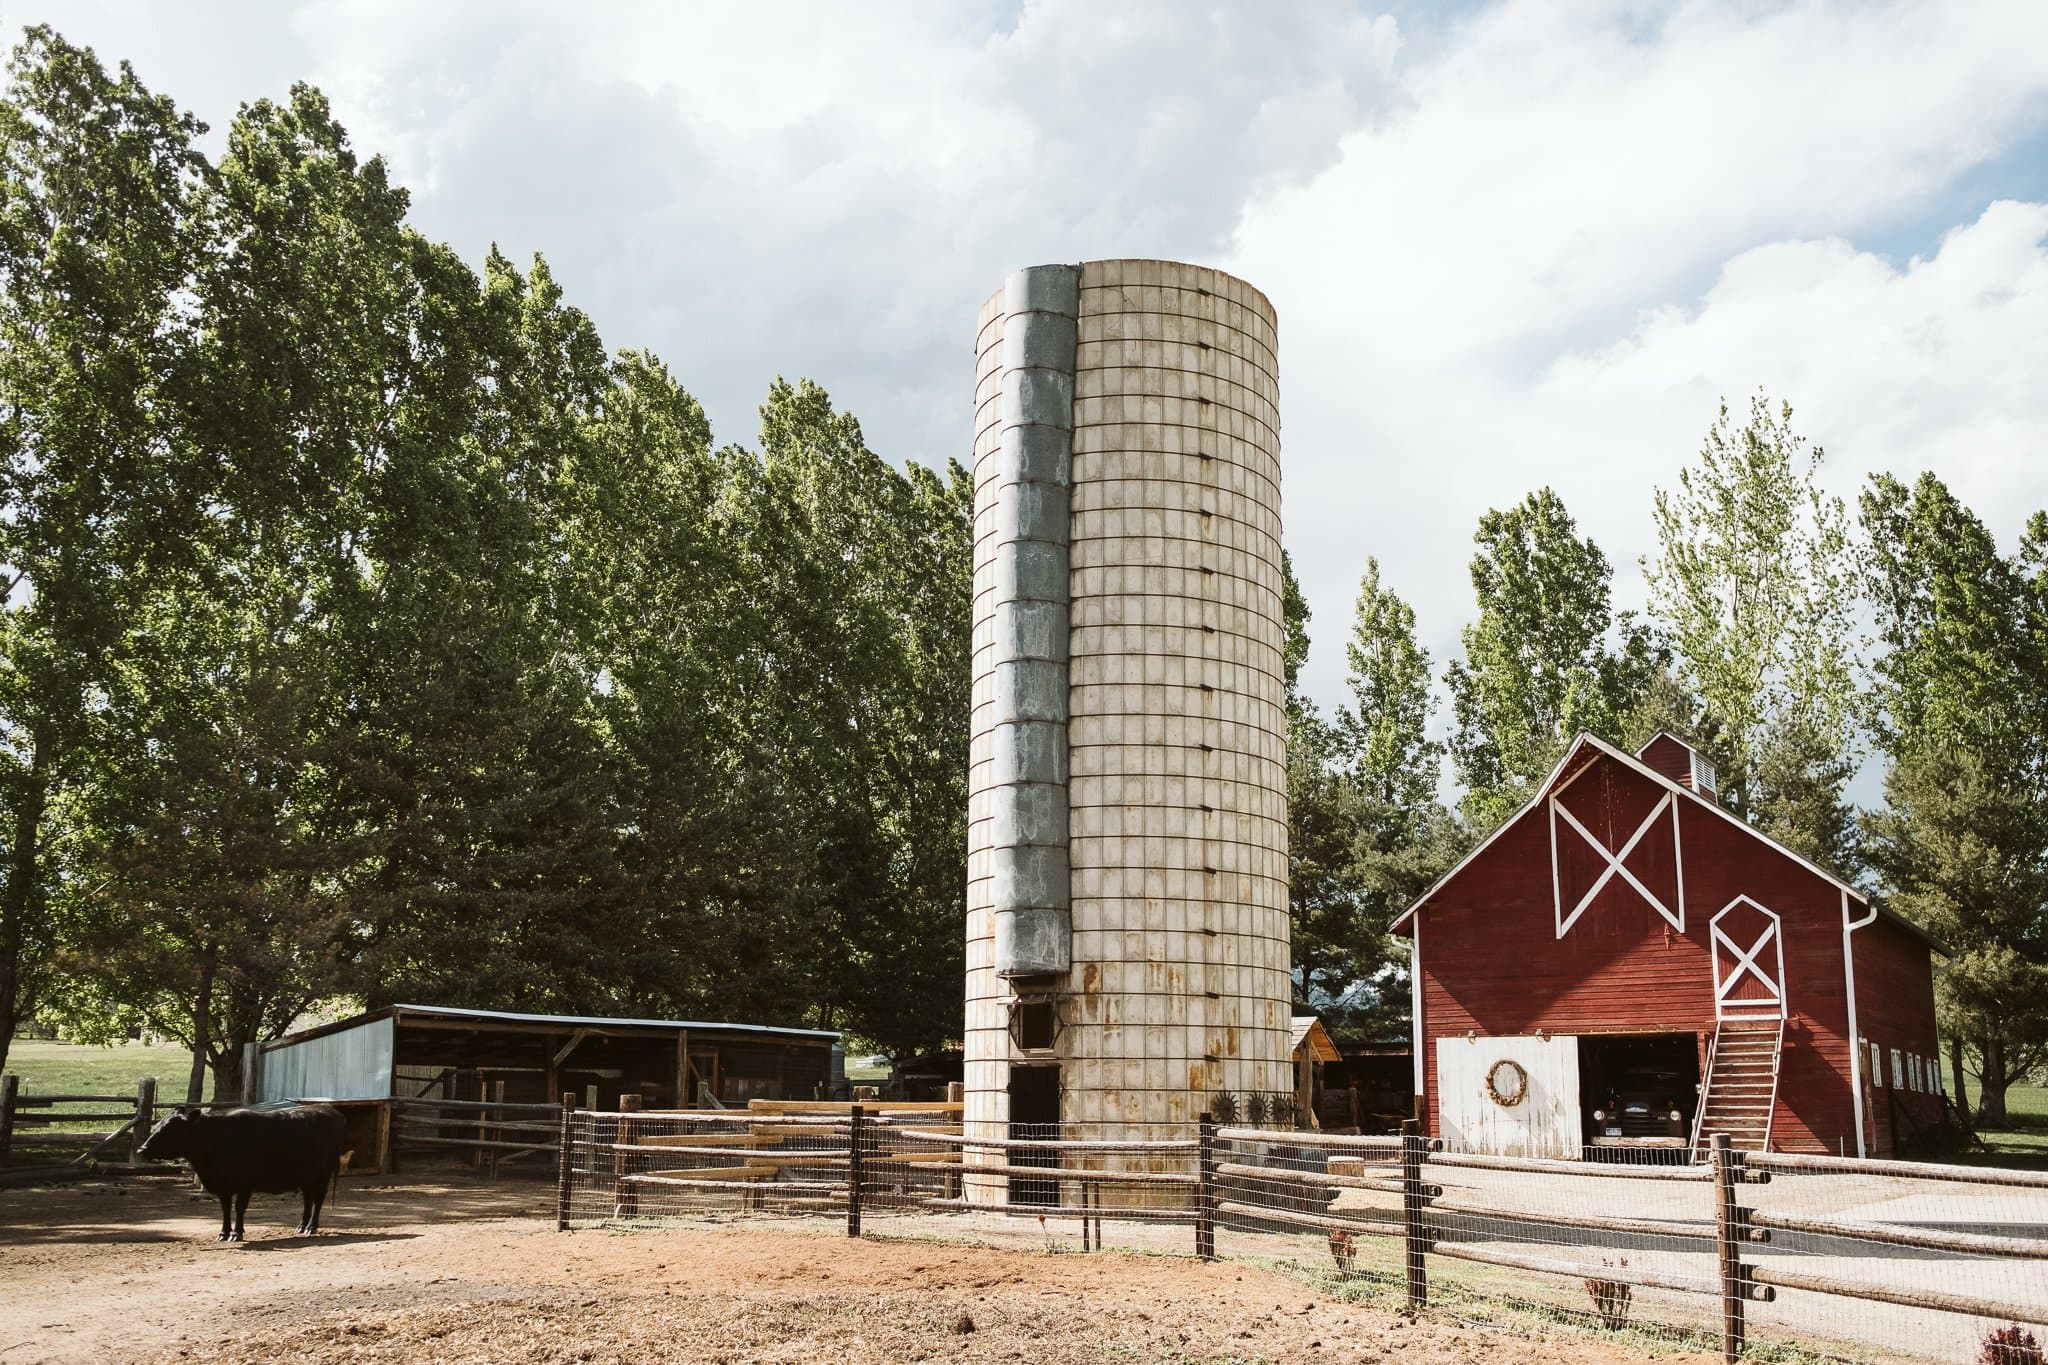 milston-well-farm-wedding-venue-boulder-13